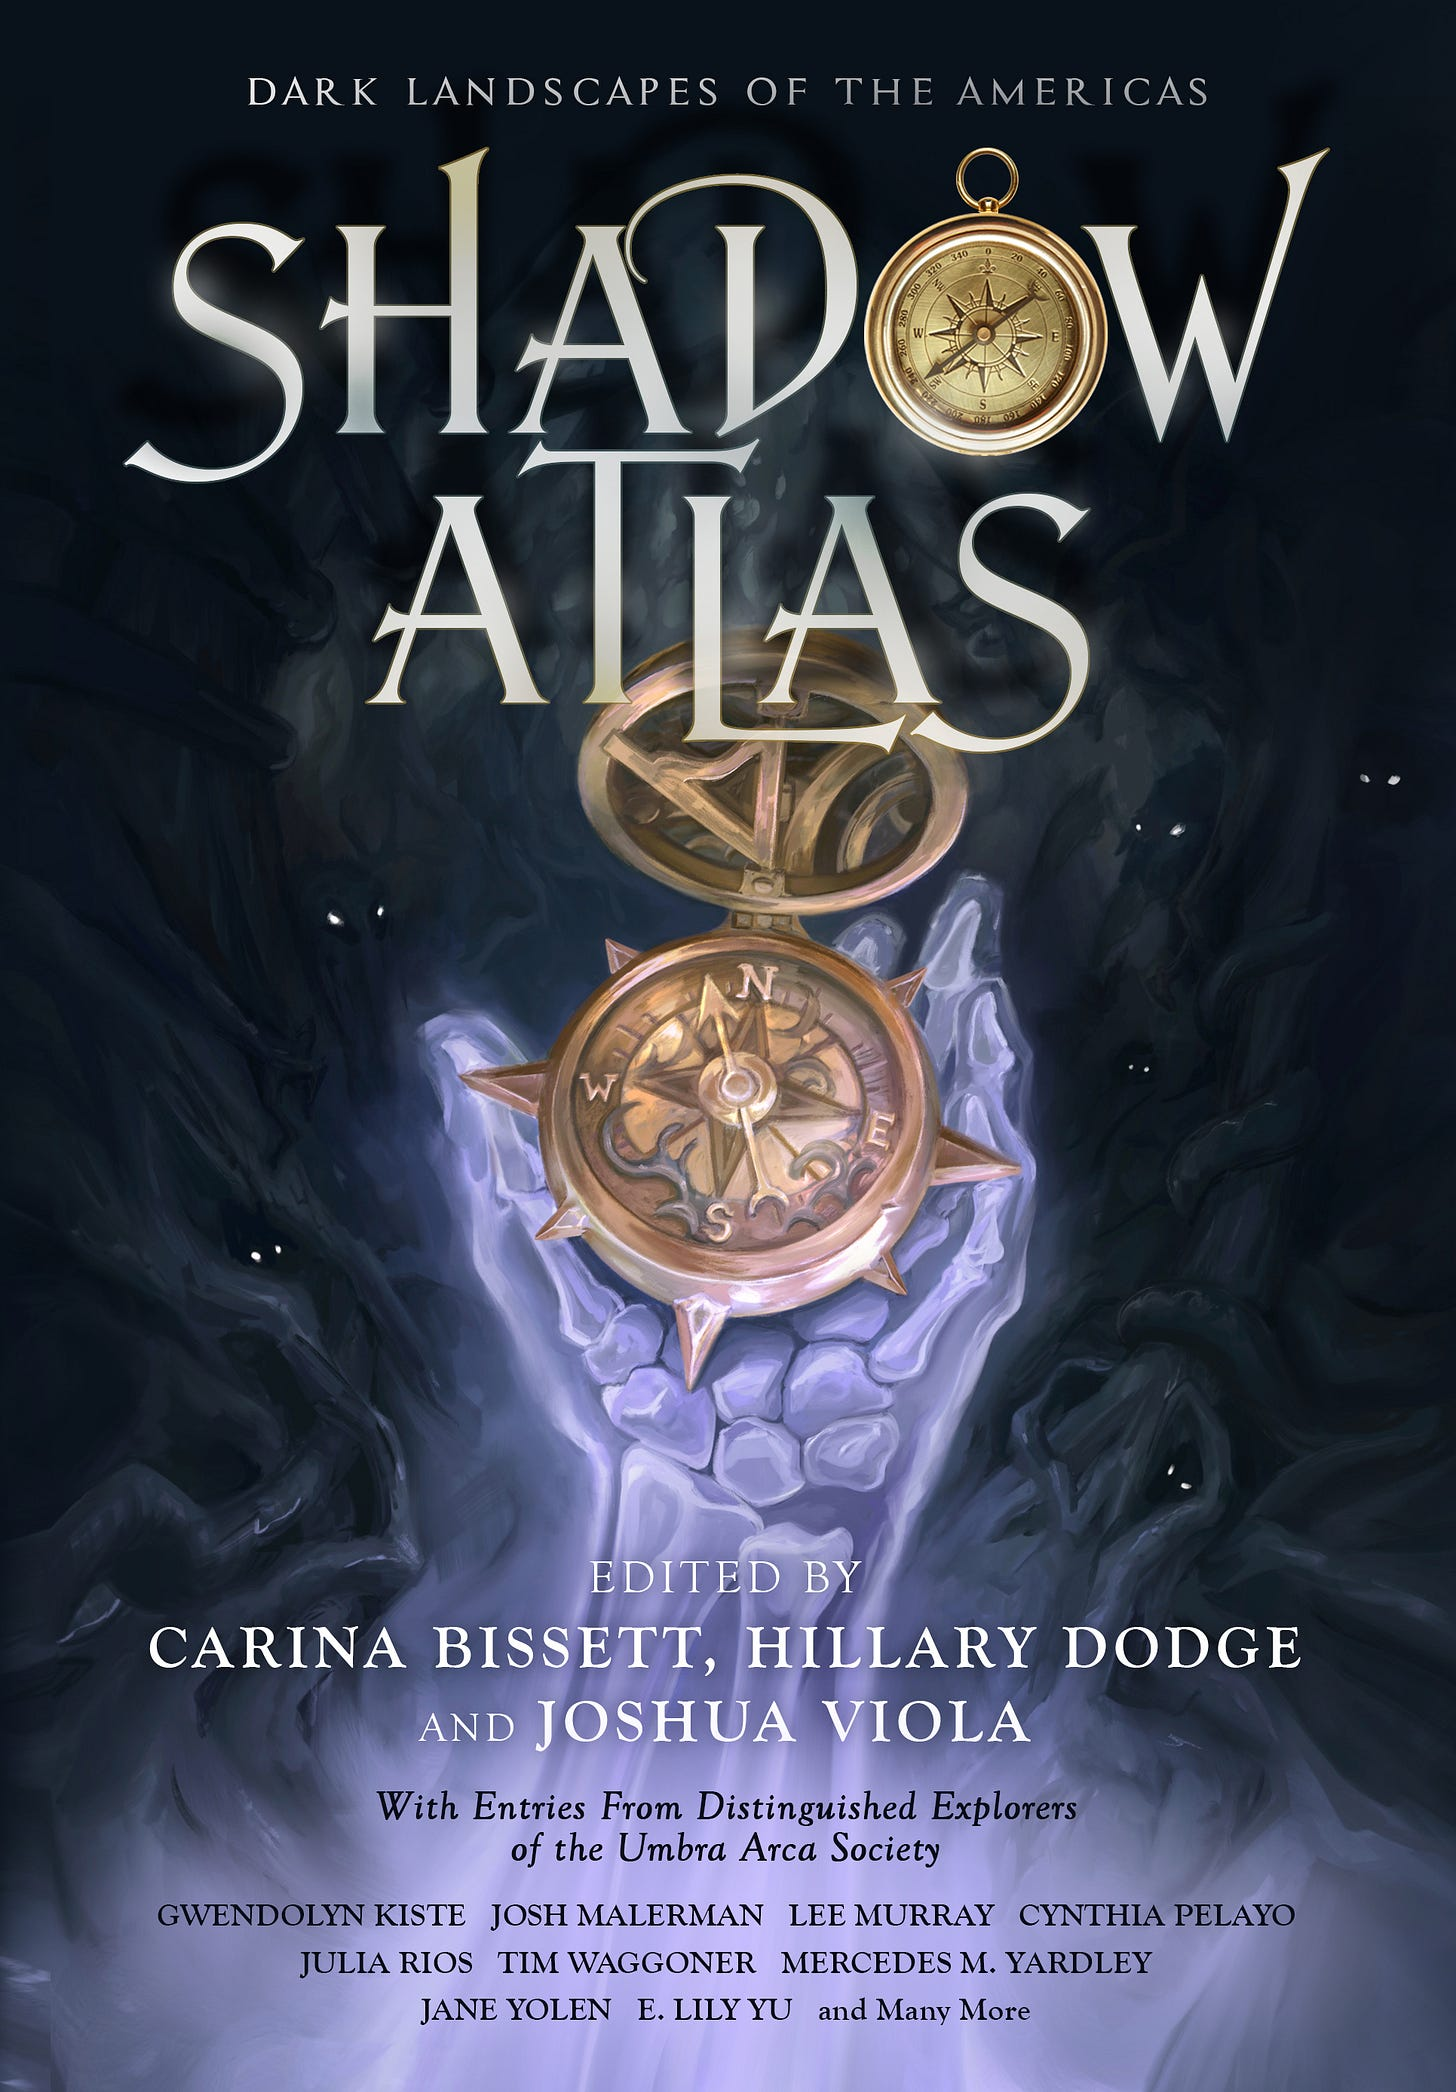 """Front cover of Shadow Atlas: Dark Landscapes of the Americas, edited by Carina Bissett, Hillary Dodge, and Joshua Viola. The illustration shows a luminously lavender skeletal hand holding a golden compass against a background full of indistinct shadow figures peering out from the darkness. Below the editor credits is the text, """"With Entries From Distinguished Explorers of the Umbra Arca Society"""" and below that appears a list of contributor names: Gwendolyn Kiste, Joshua Malerman, Lee Murray, Cynthia Pelayo, Julia Rios, Tim Waggoner, Mercedes M. Yardley, Jane Yolen, E. Lily Yu, and Many More"""